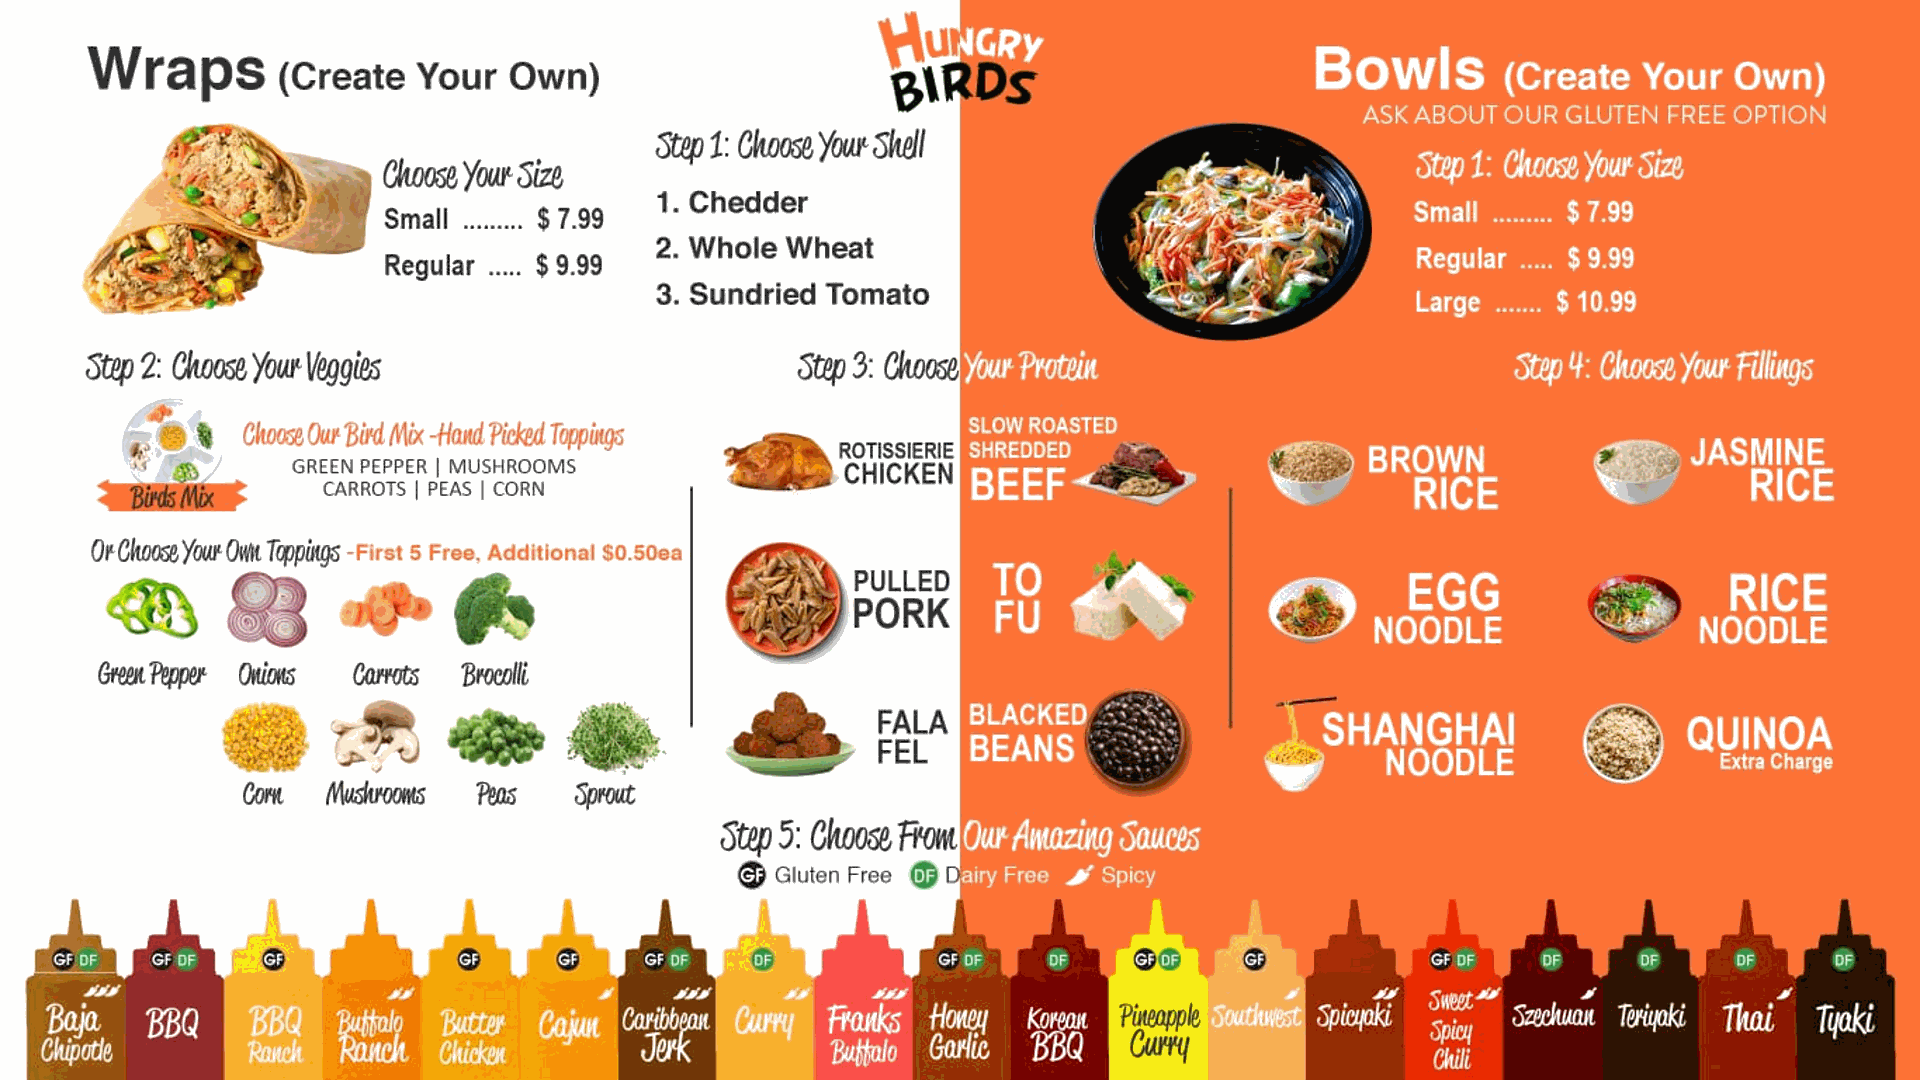 hungry-birds-wraps-bowls-menu